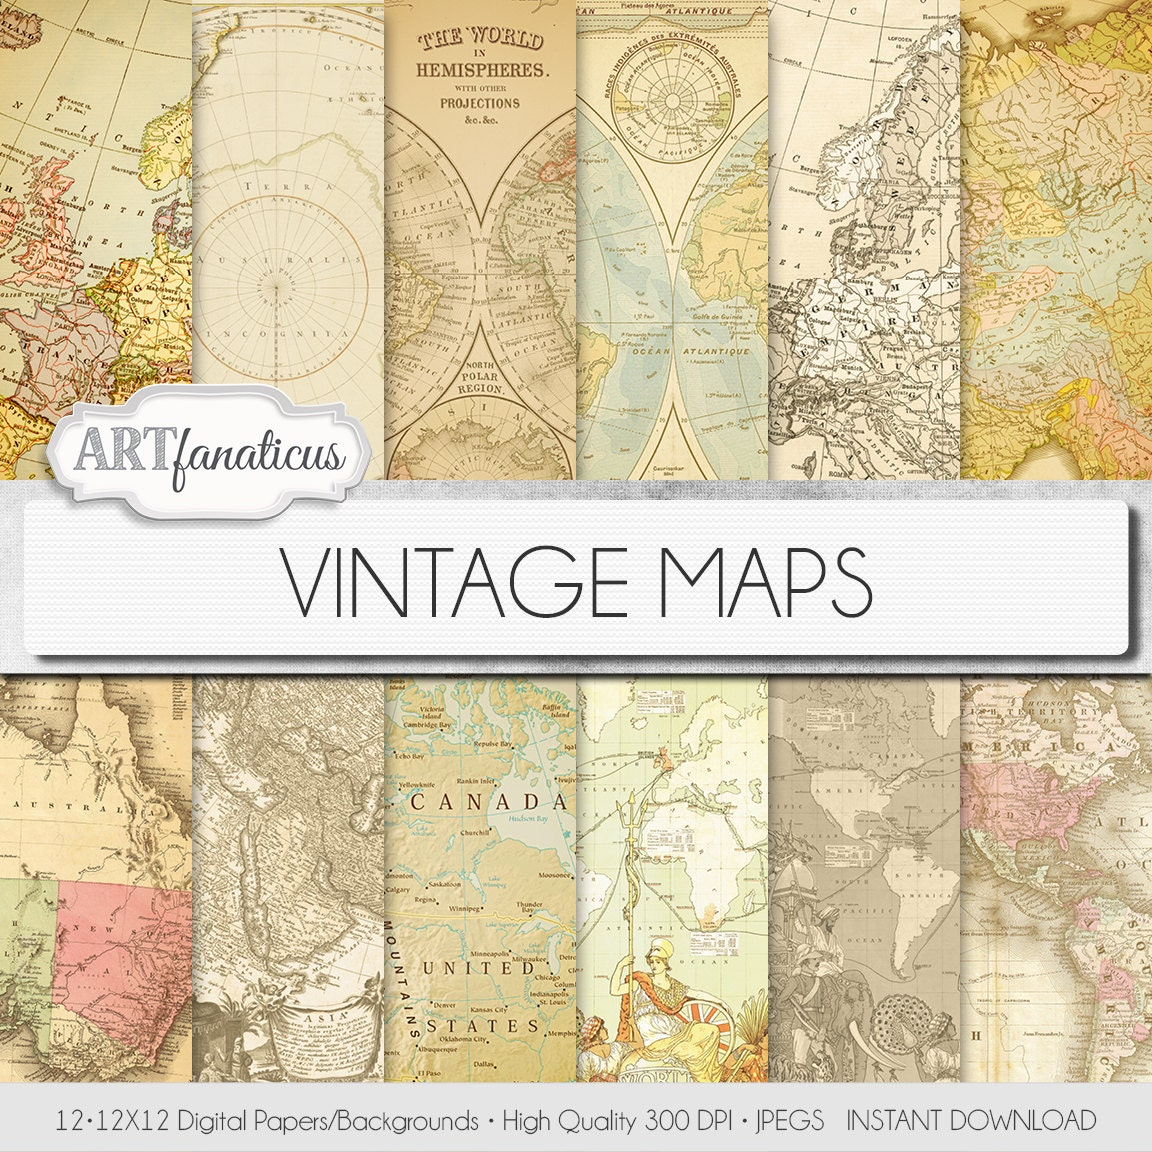 Vintage maps digital paper vintage maps travelantique maps old vintage maps digital paper vintage maps travelantique maps old world globe america europe asia australia maps scrapbooking from artfanaticus on gumiabroncs Images